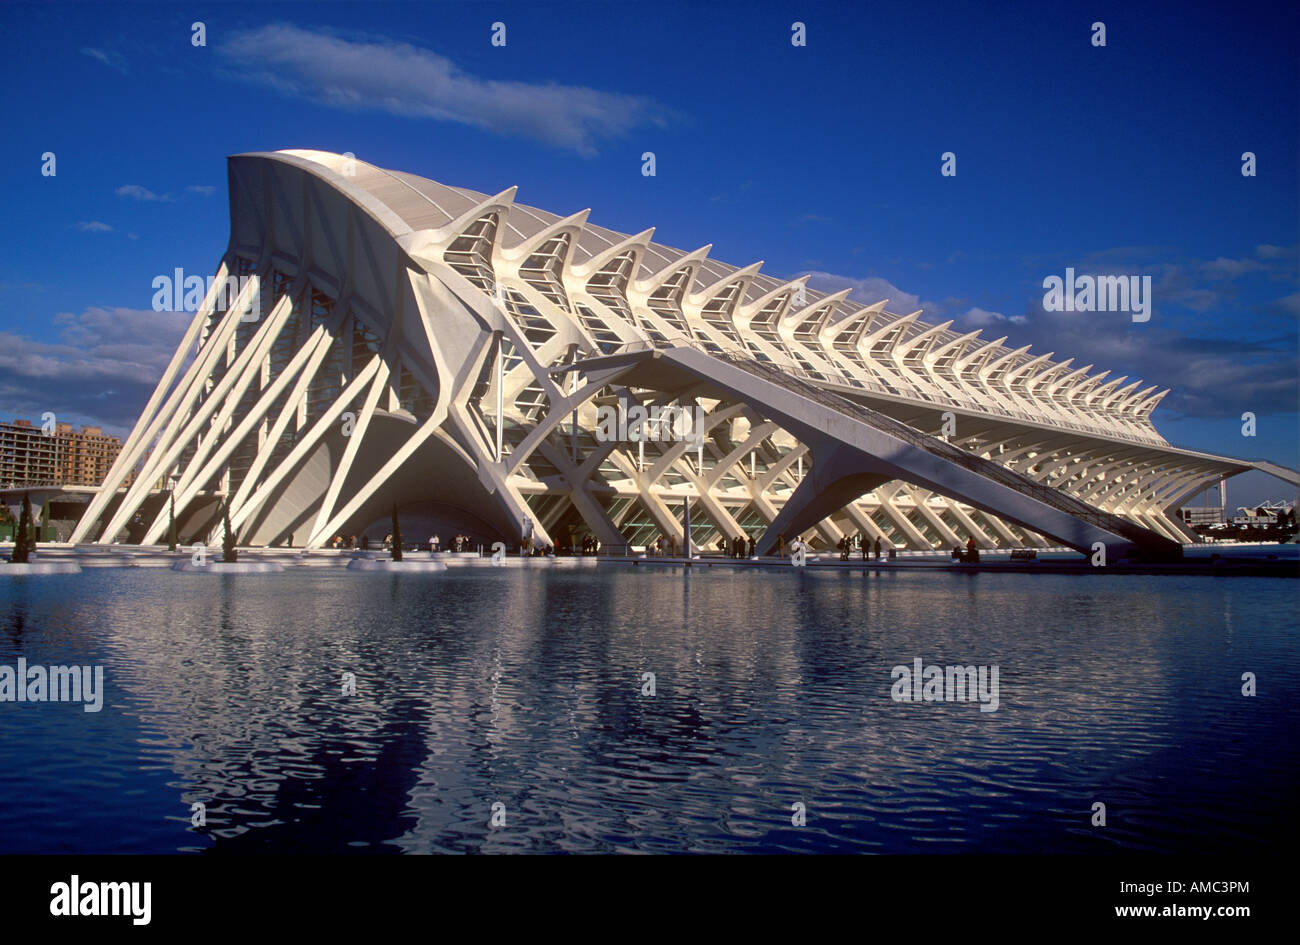 City of Arts and Sciences Museum of the 21st Century in the city of Valencia - Stock Image